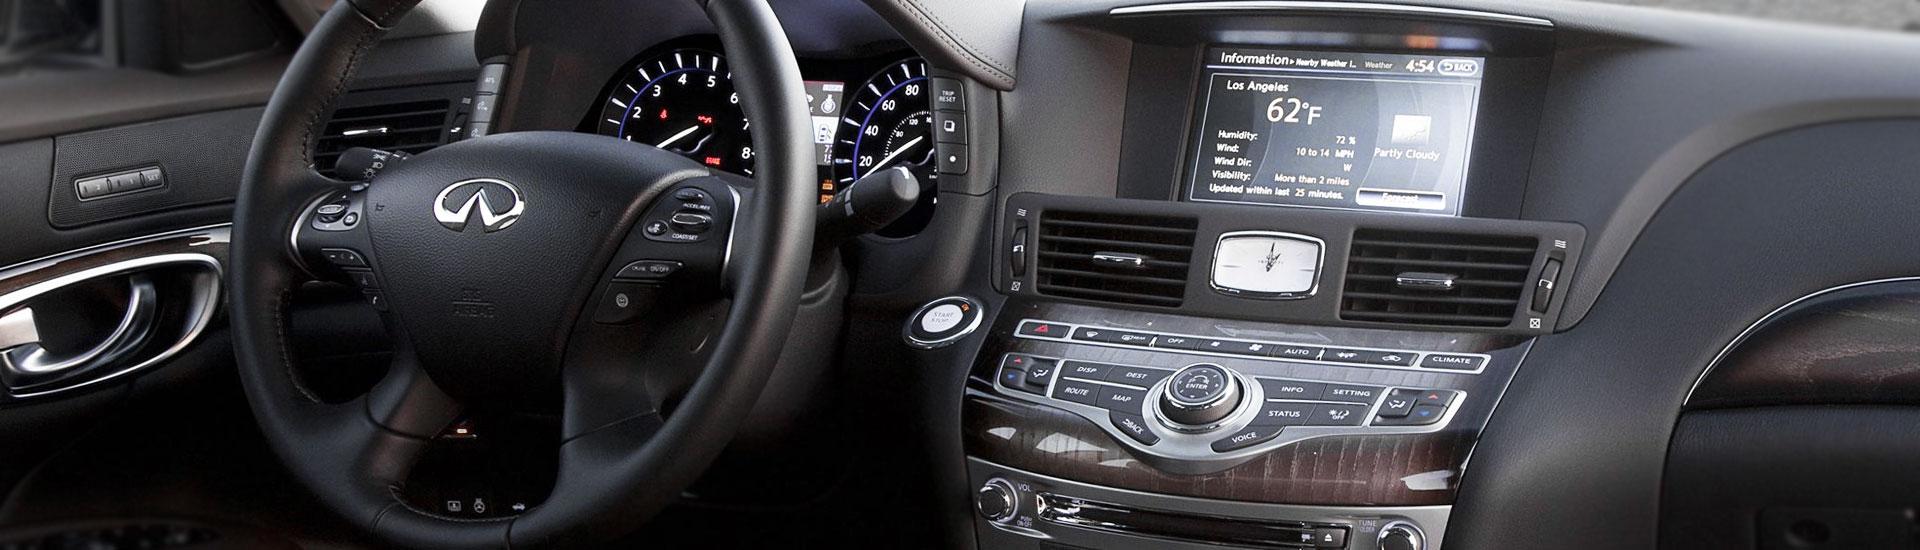 Infiniti M56 Custom Dash Kits